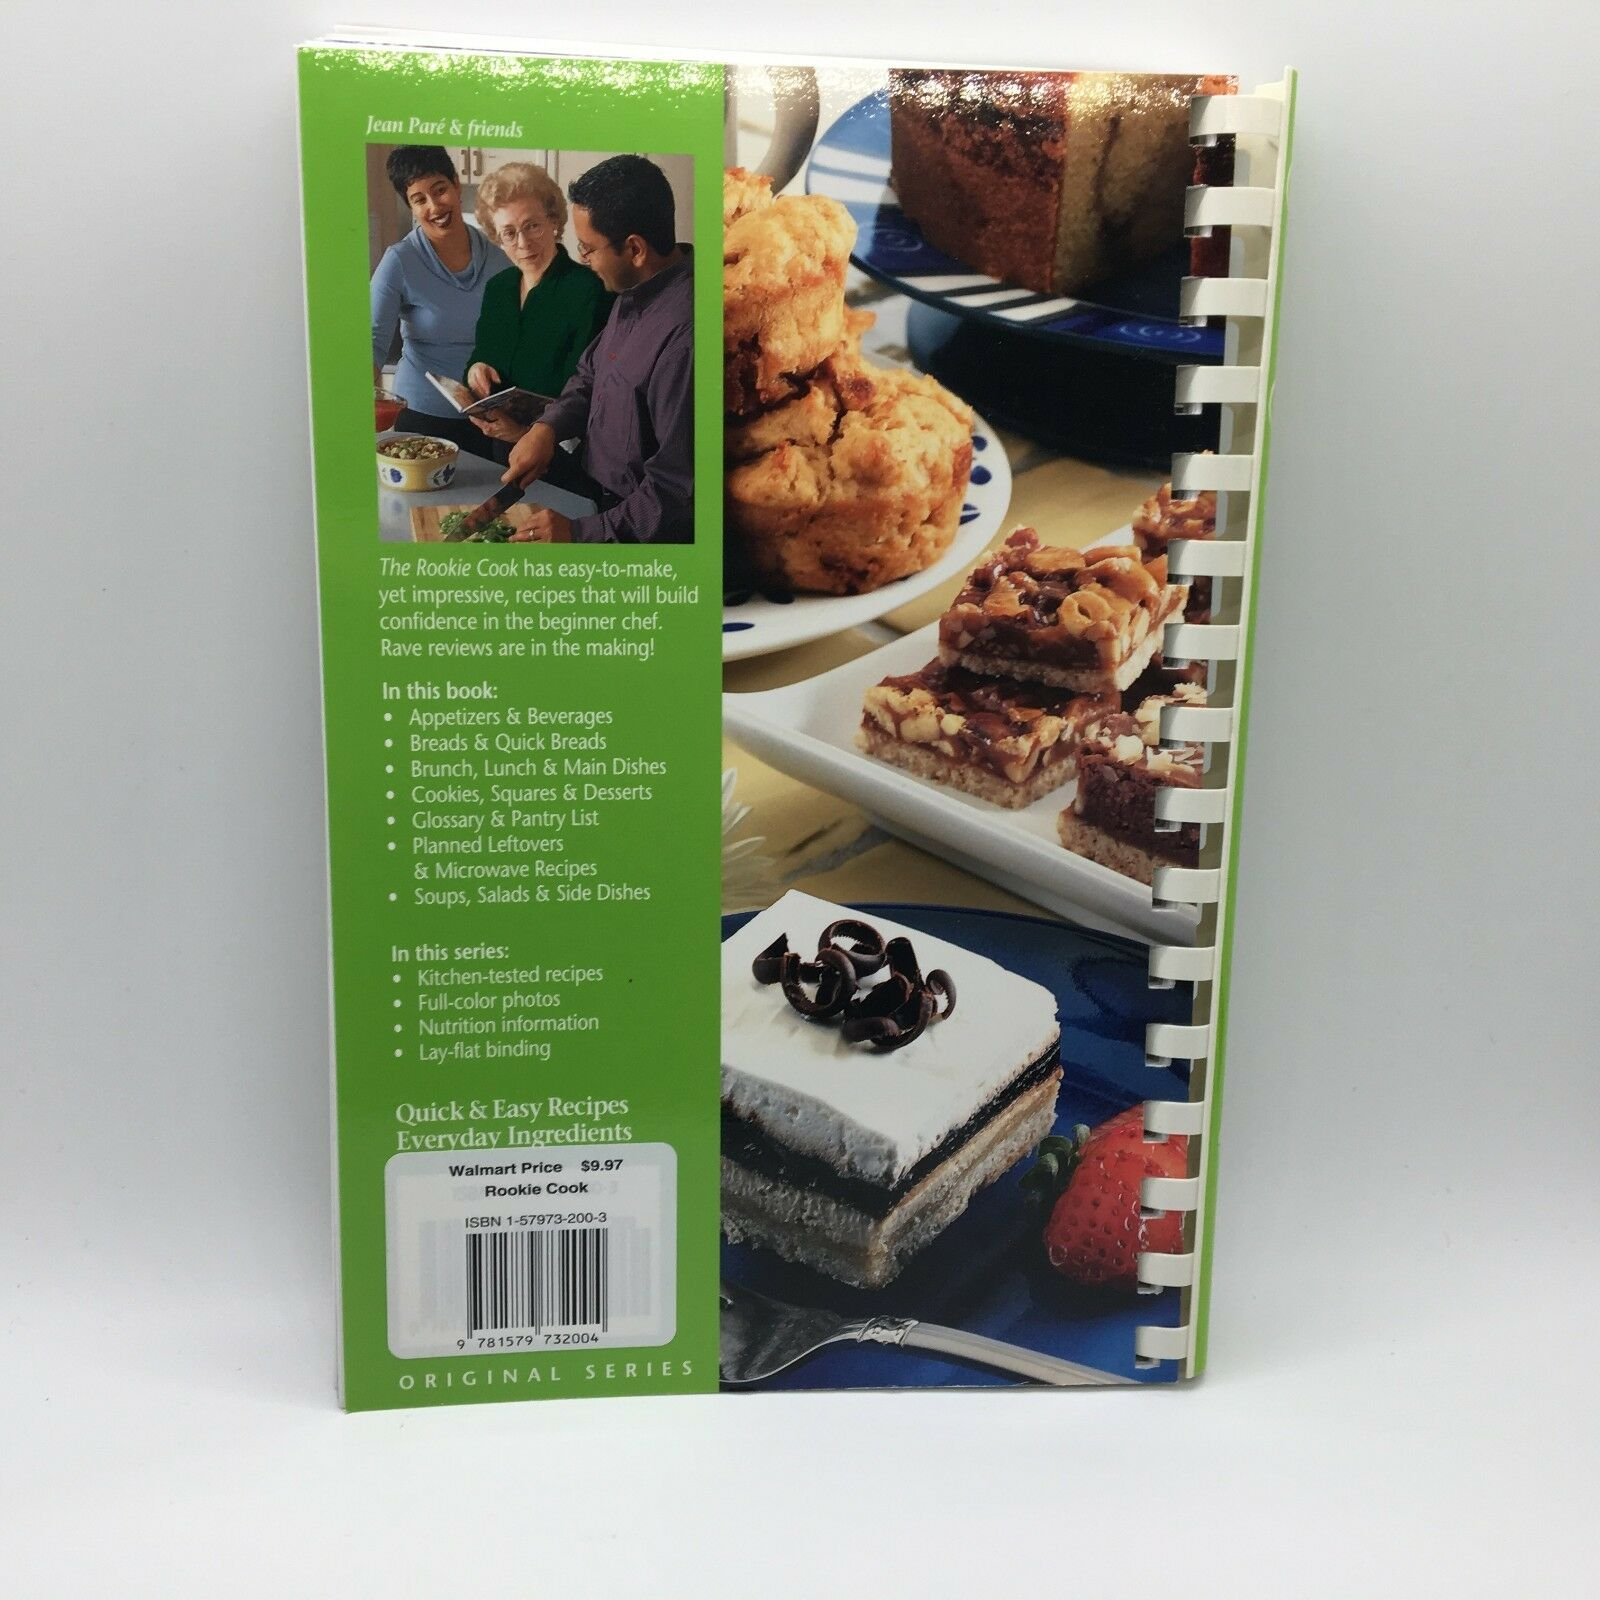 Rave Reviews The Rookie Cook Foolproof Recipes